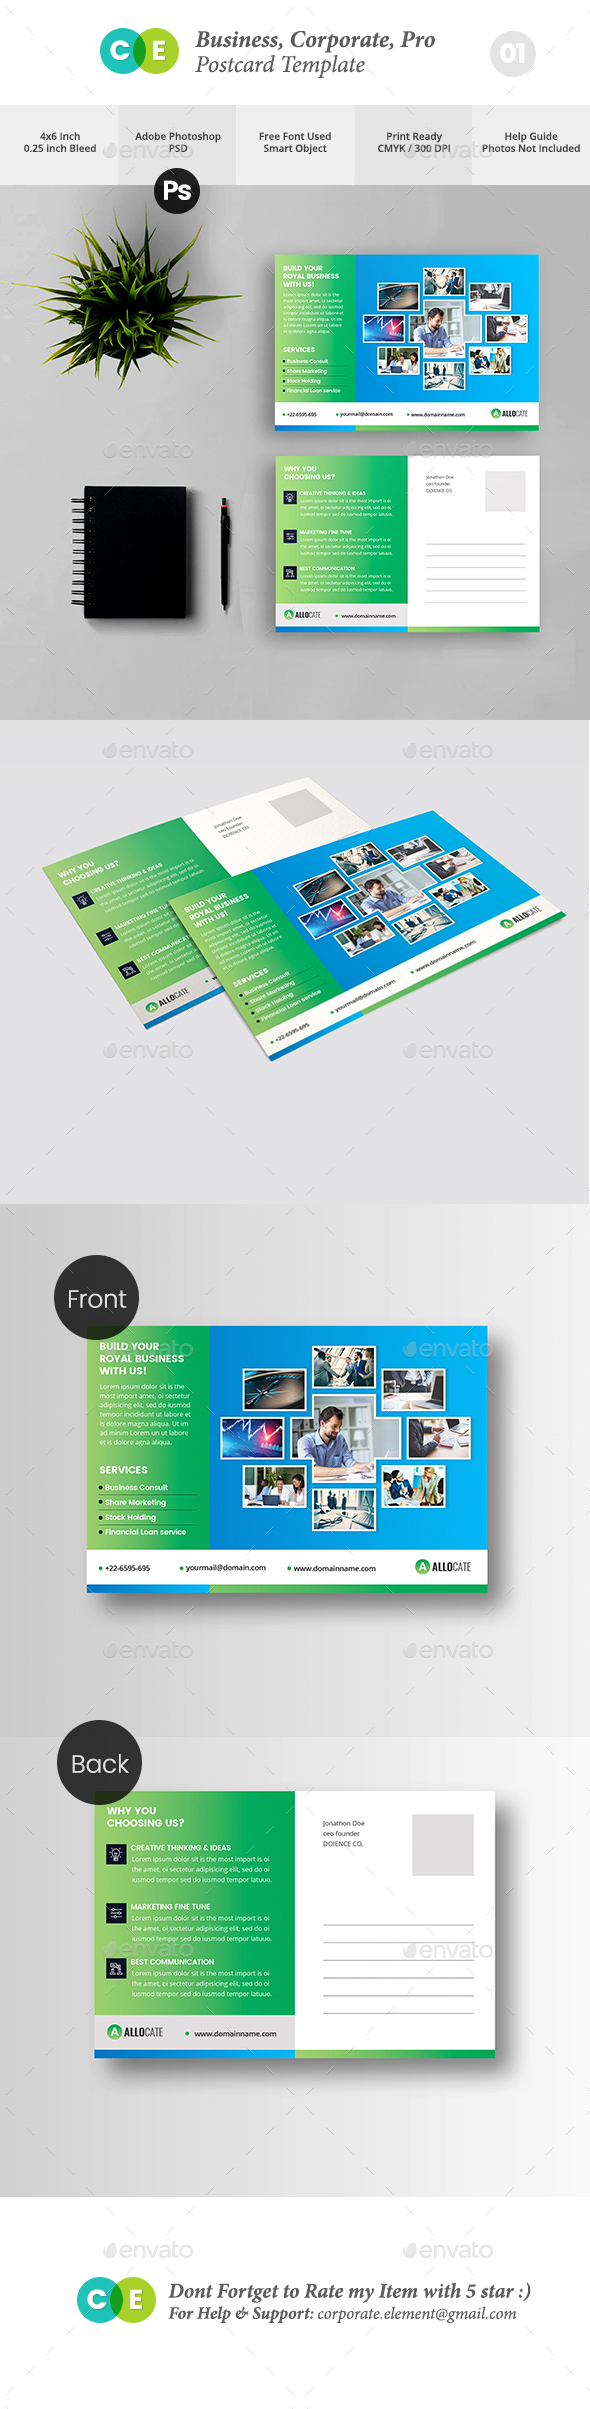 Clean Corporate Pro Postcard  V01 - Cards & Invites Print Templates